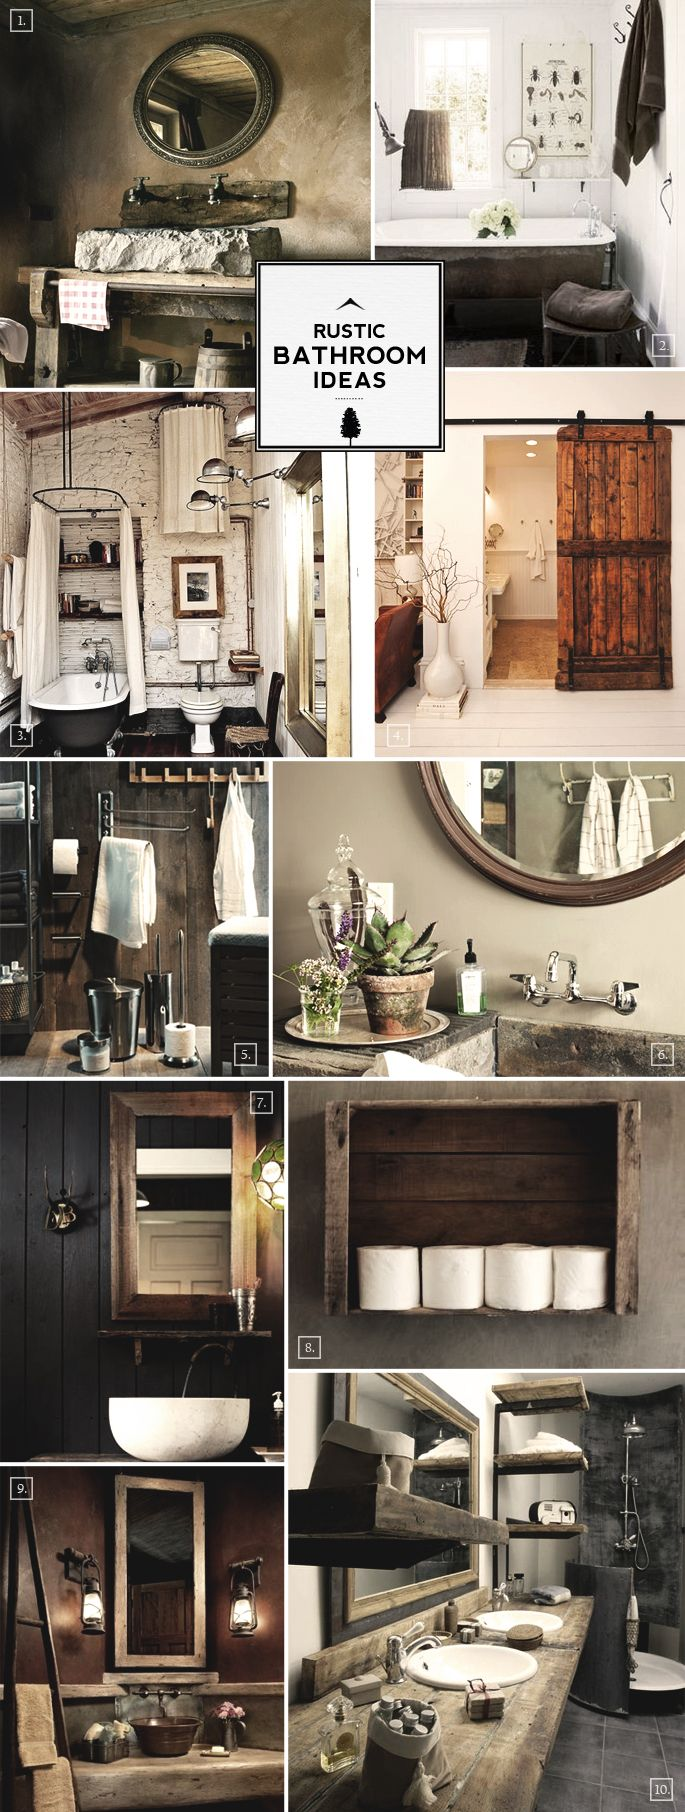 Rustic bathroom decor on pinterest pallet shelf bathroom for Bathroom decor